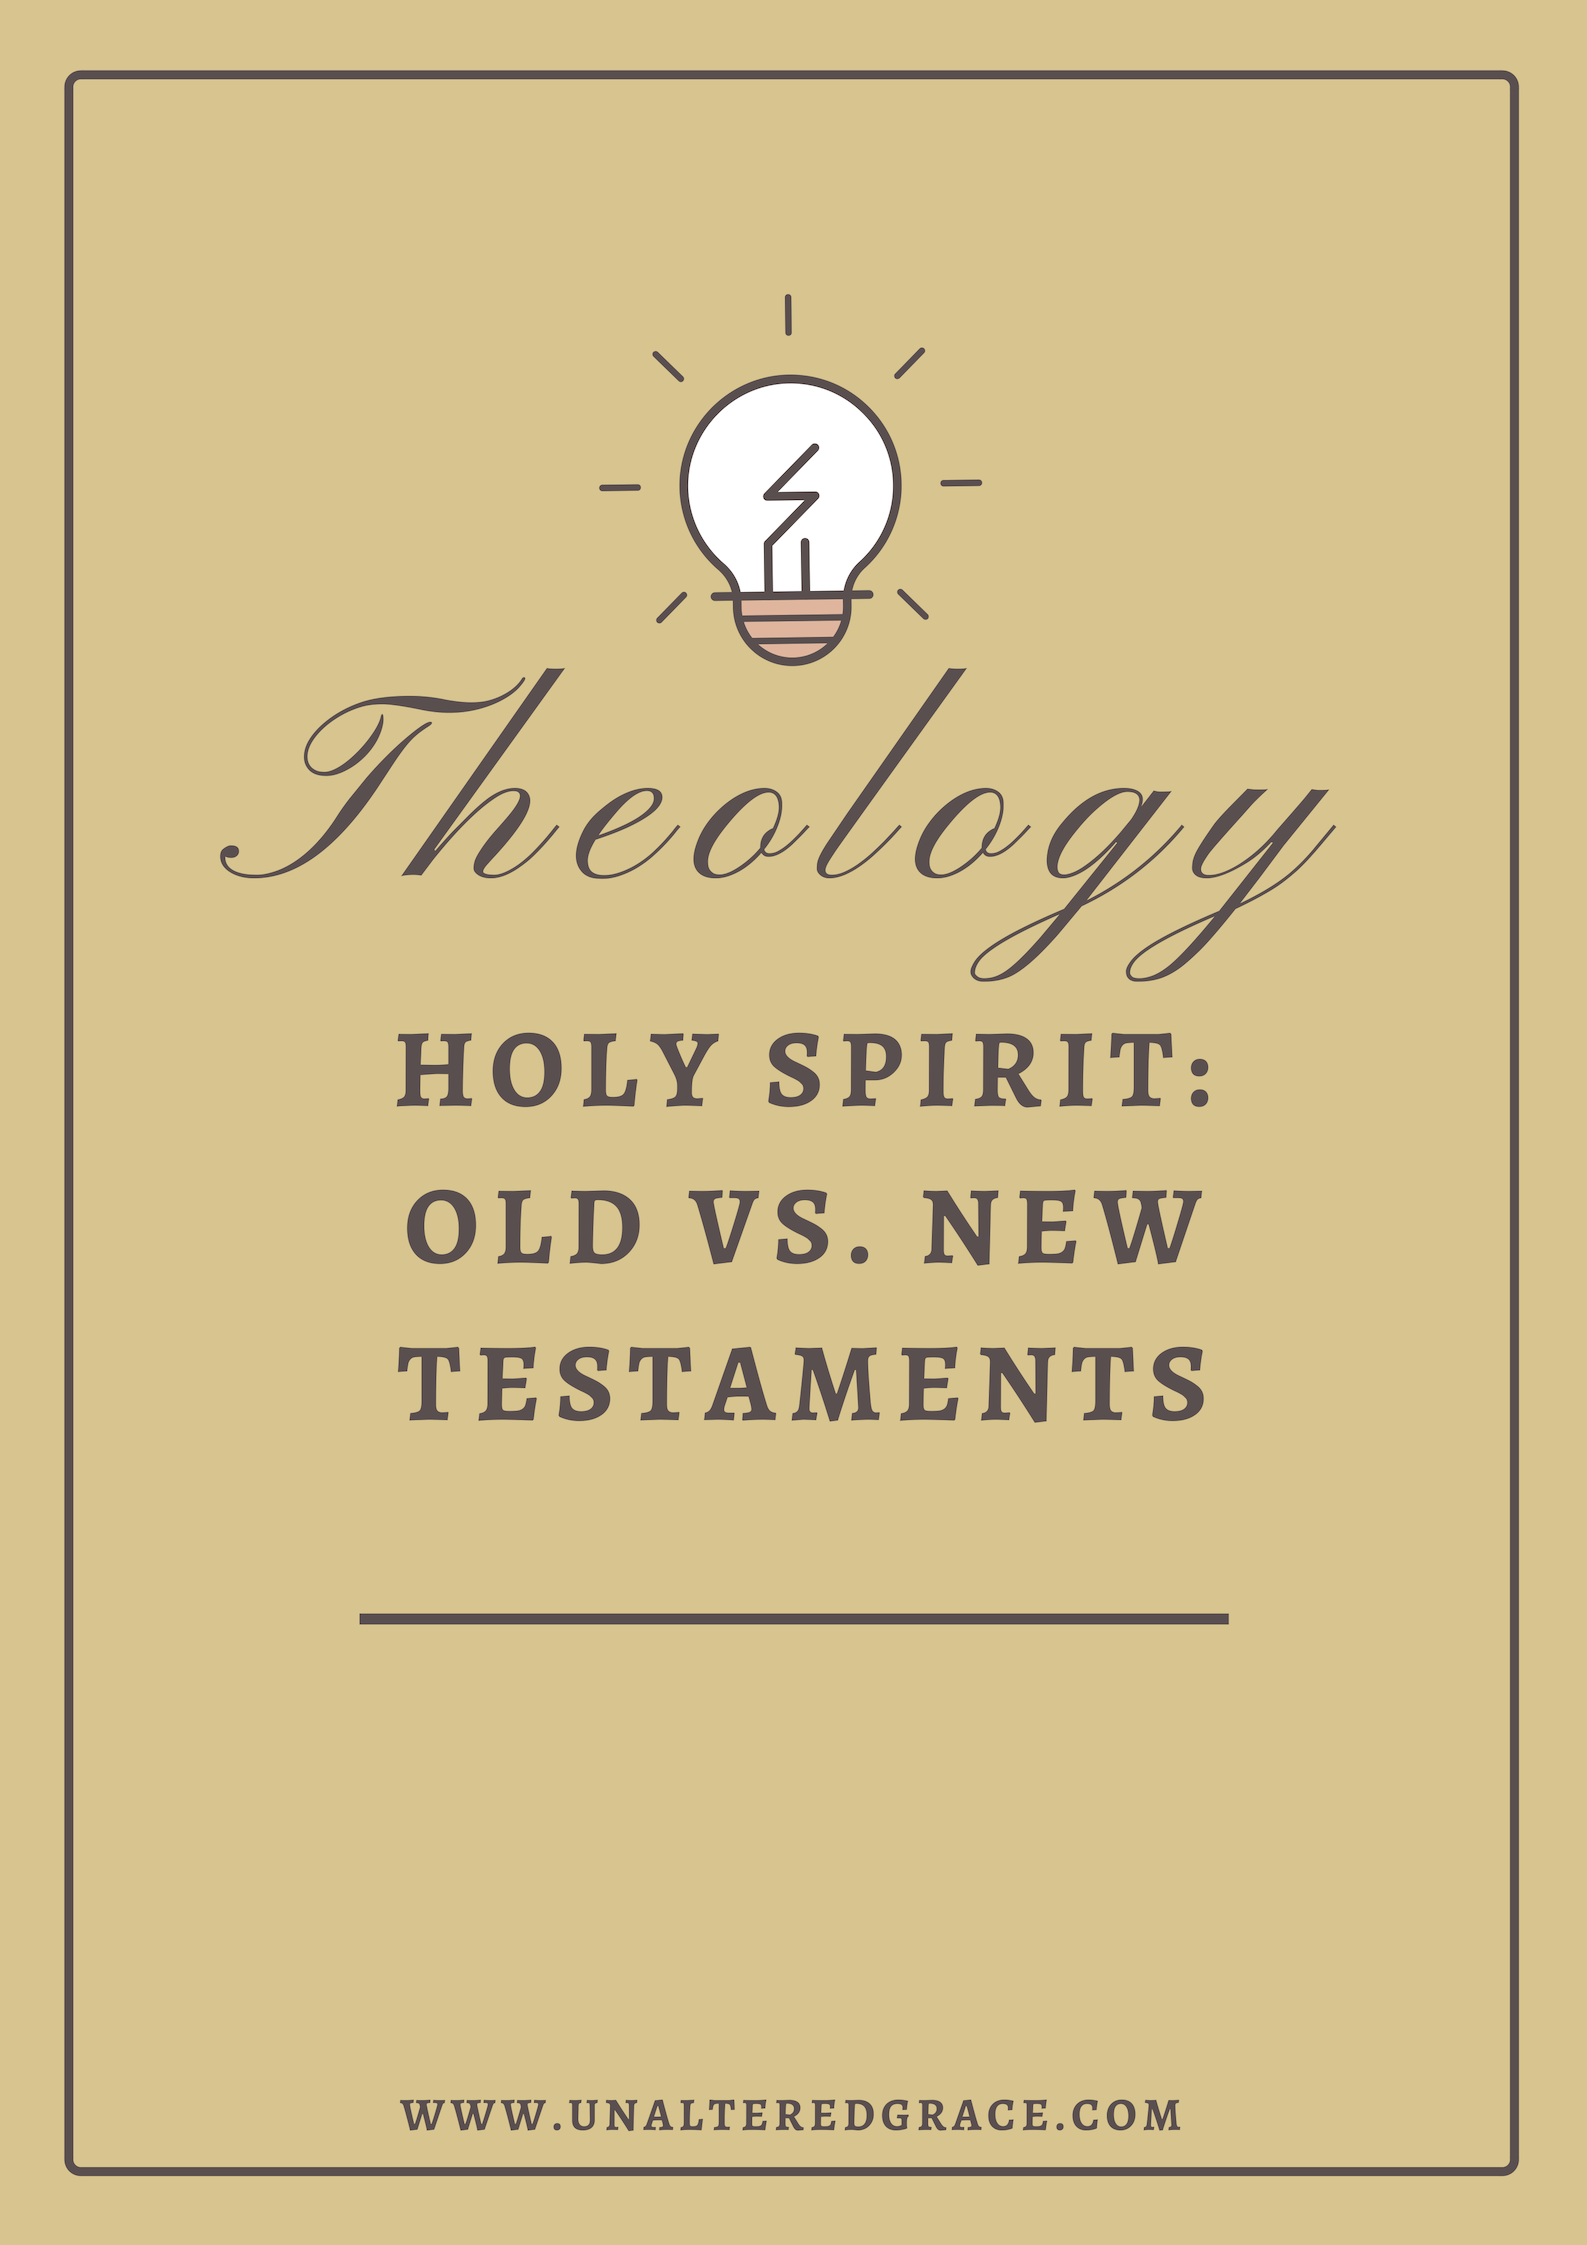 Theology Holy Spirit Old versus New Testament